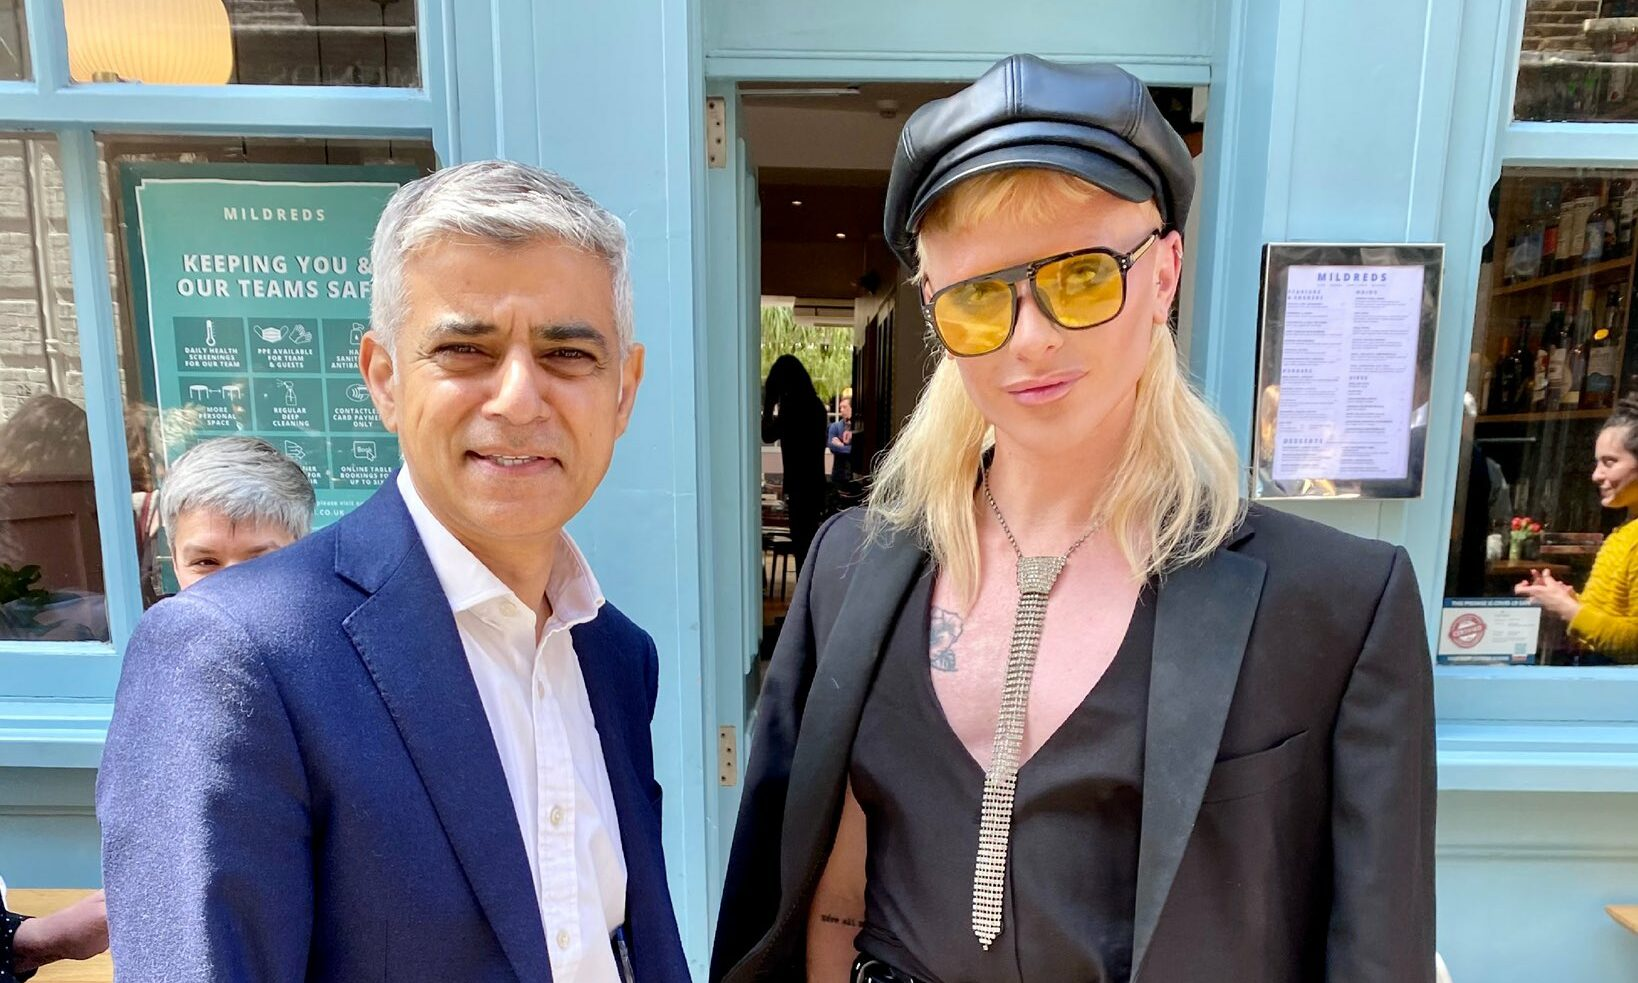 Bimini Bon Boulash and Sadiq Khan went for brunch and the gays are obsessed